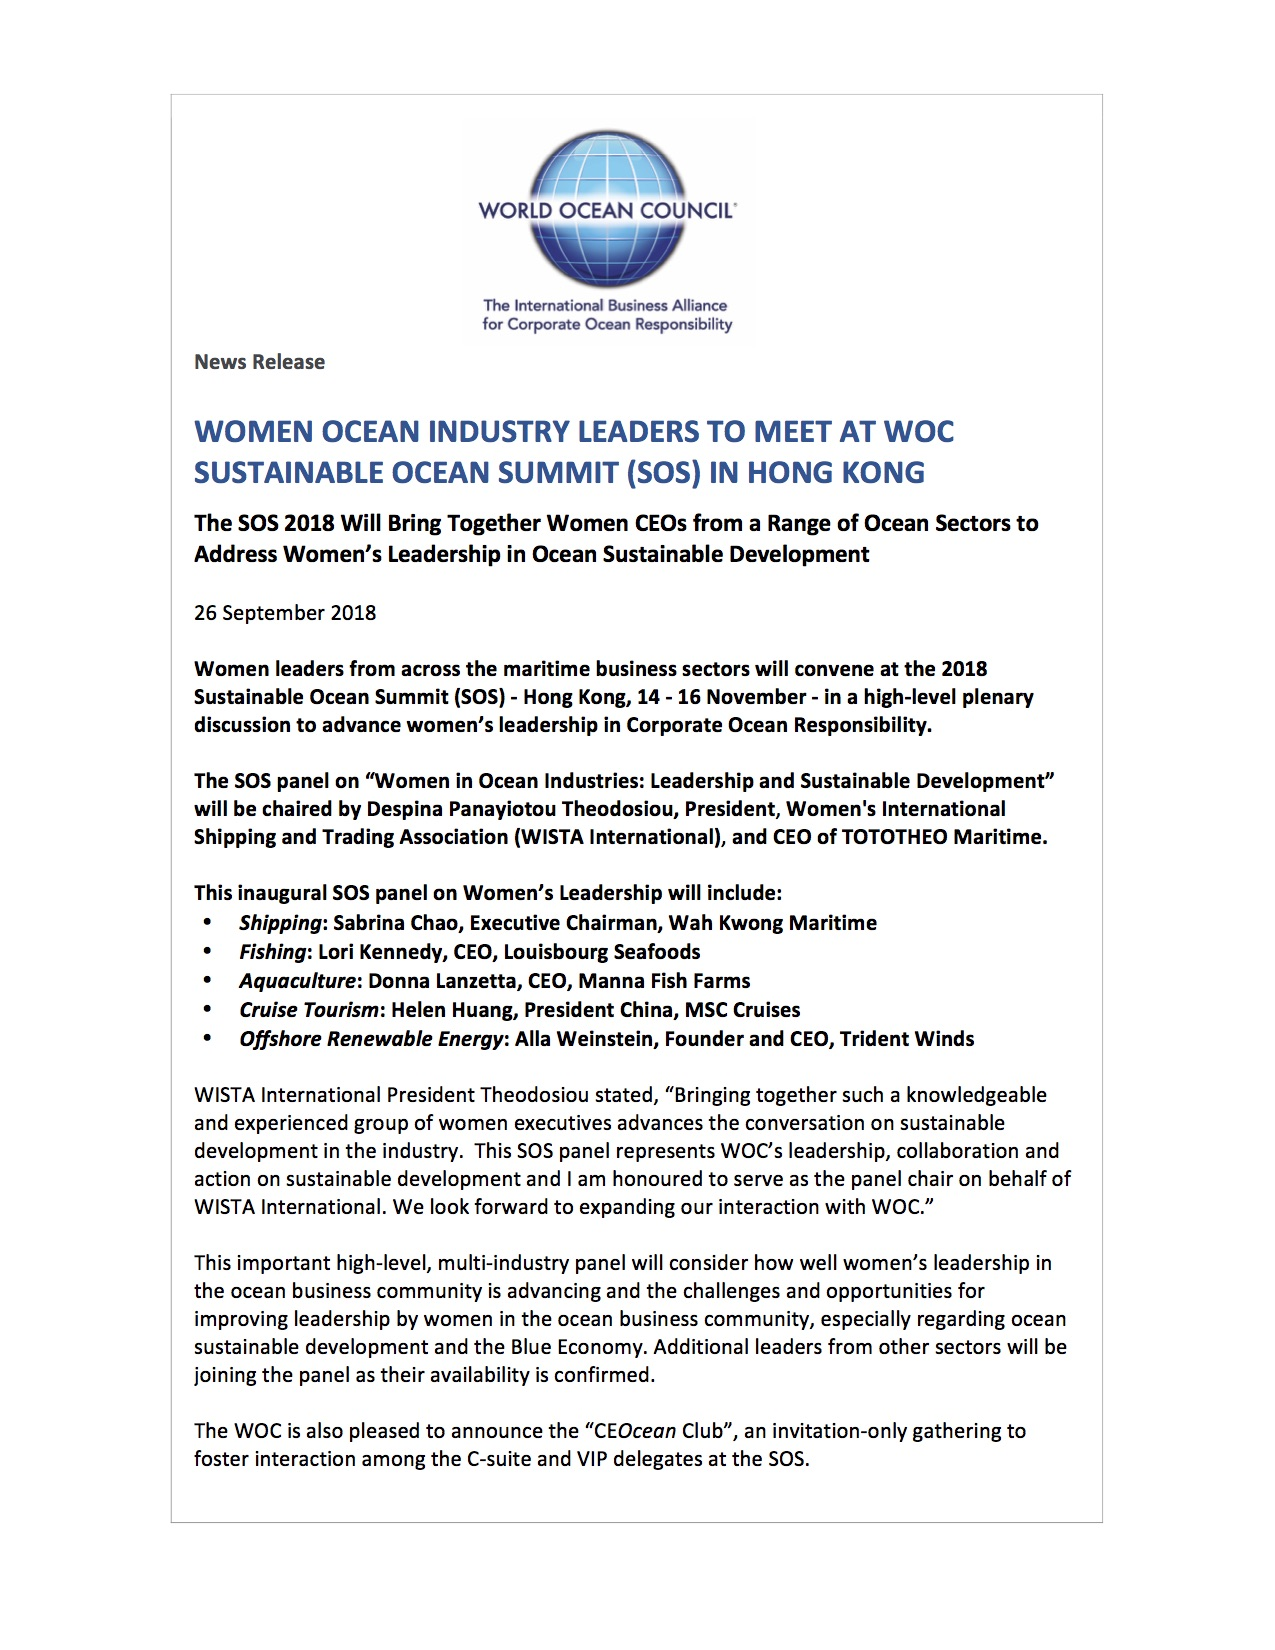 Women Ocean Industry Leaders to Meet at WOC Sustainable Ocean Summit (SOS) in Hong Kong - 26 September 2018